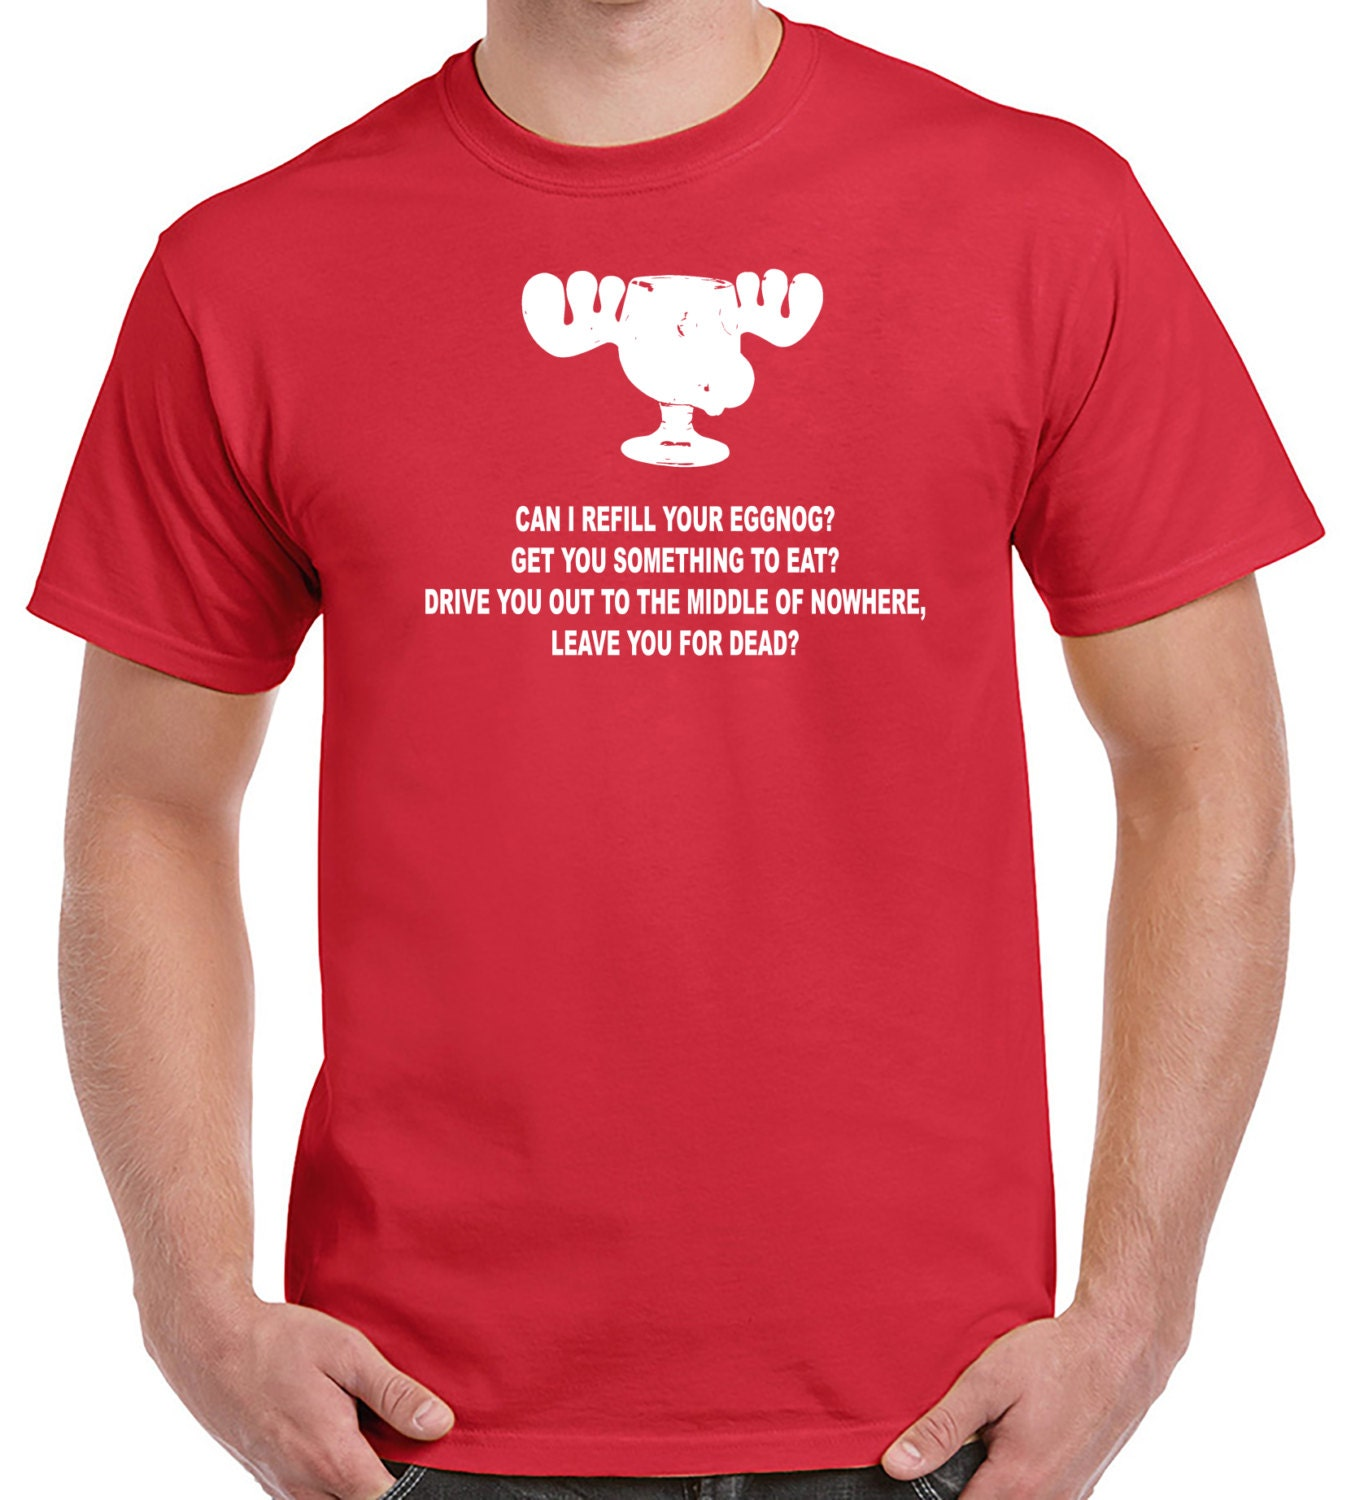 Most Famous Christmas Vacation Quotes: Funny Tshirts Christmas Vacation Shirt Christmas Vacation